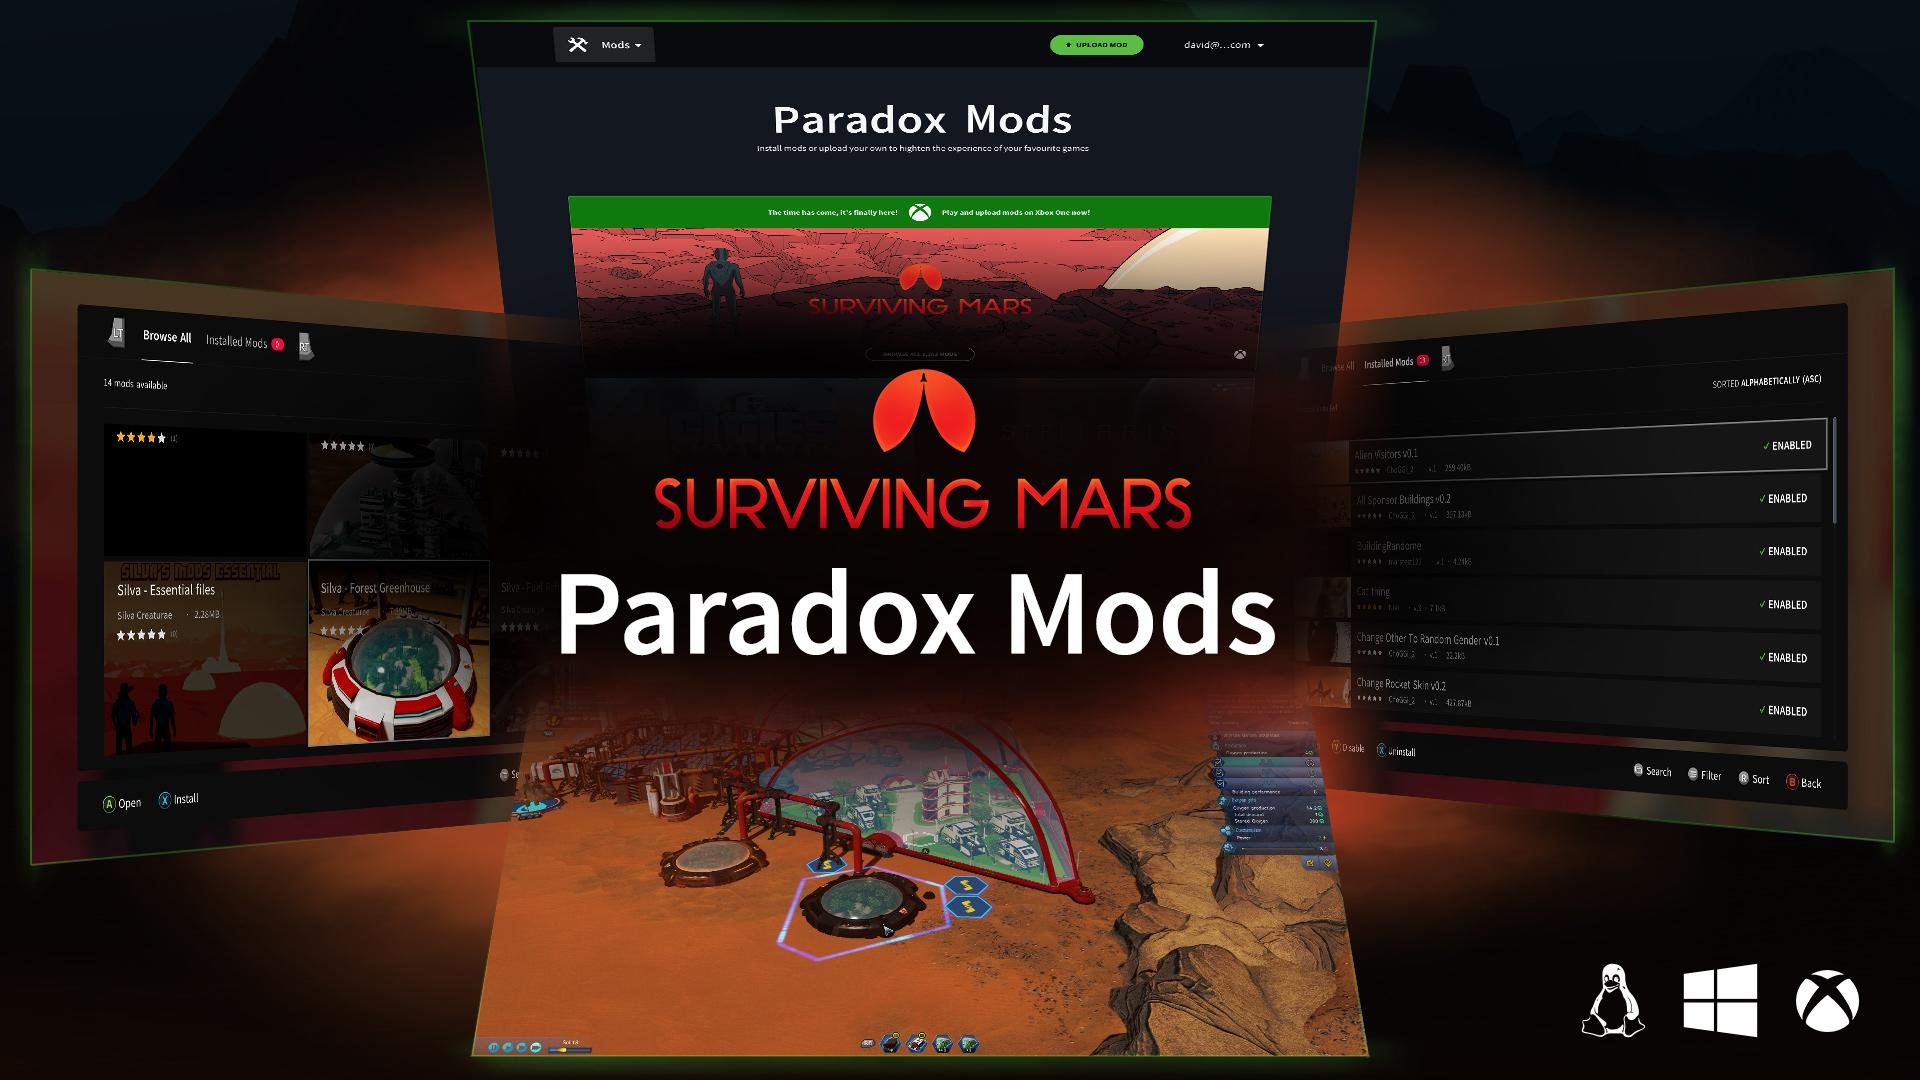 Surviving Mars' debuts Xbox and PC mod platform Paradox Mods